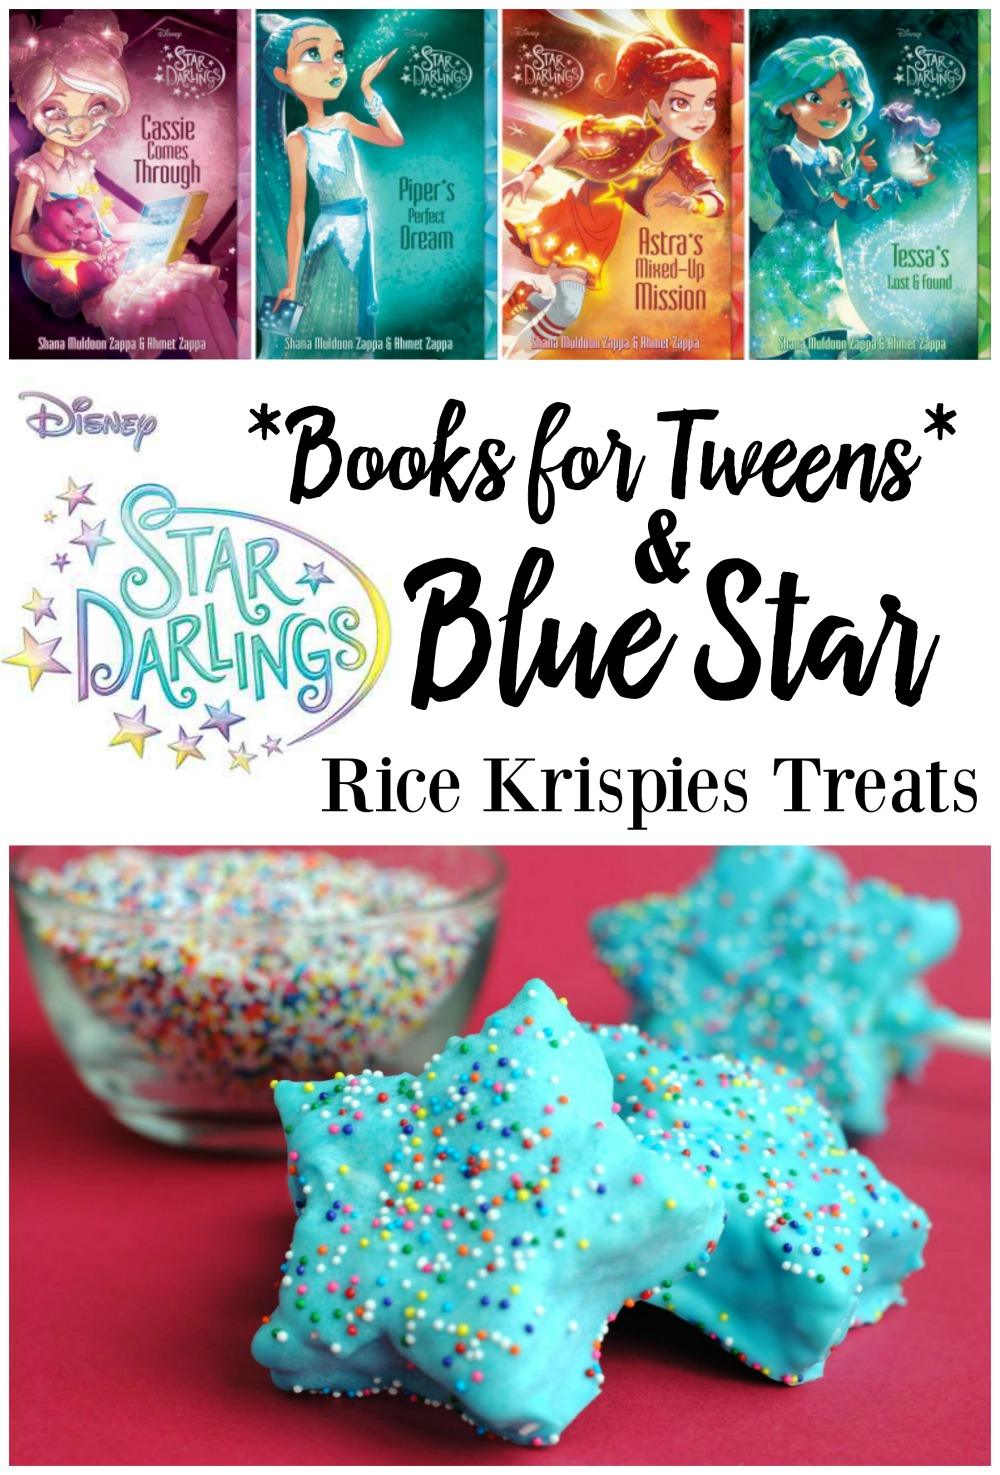 Disney Star Darlings Tween Book Series + Star Rice Krispies Treats Recipe